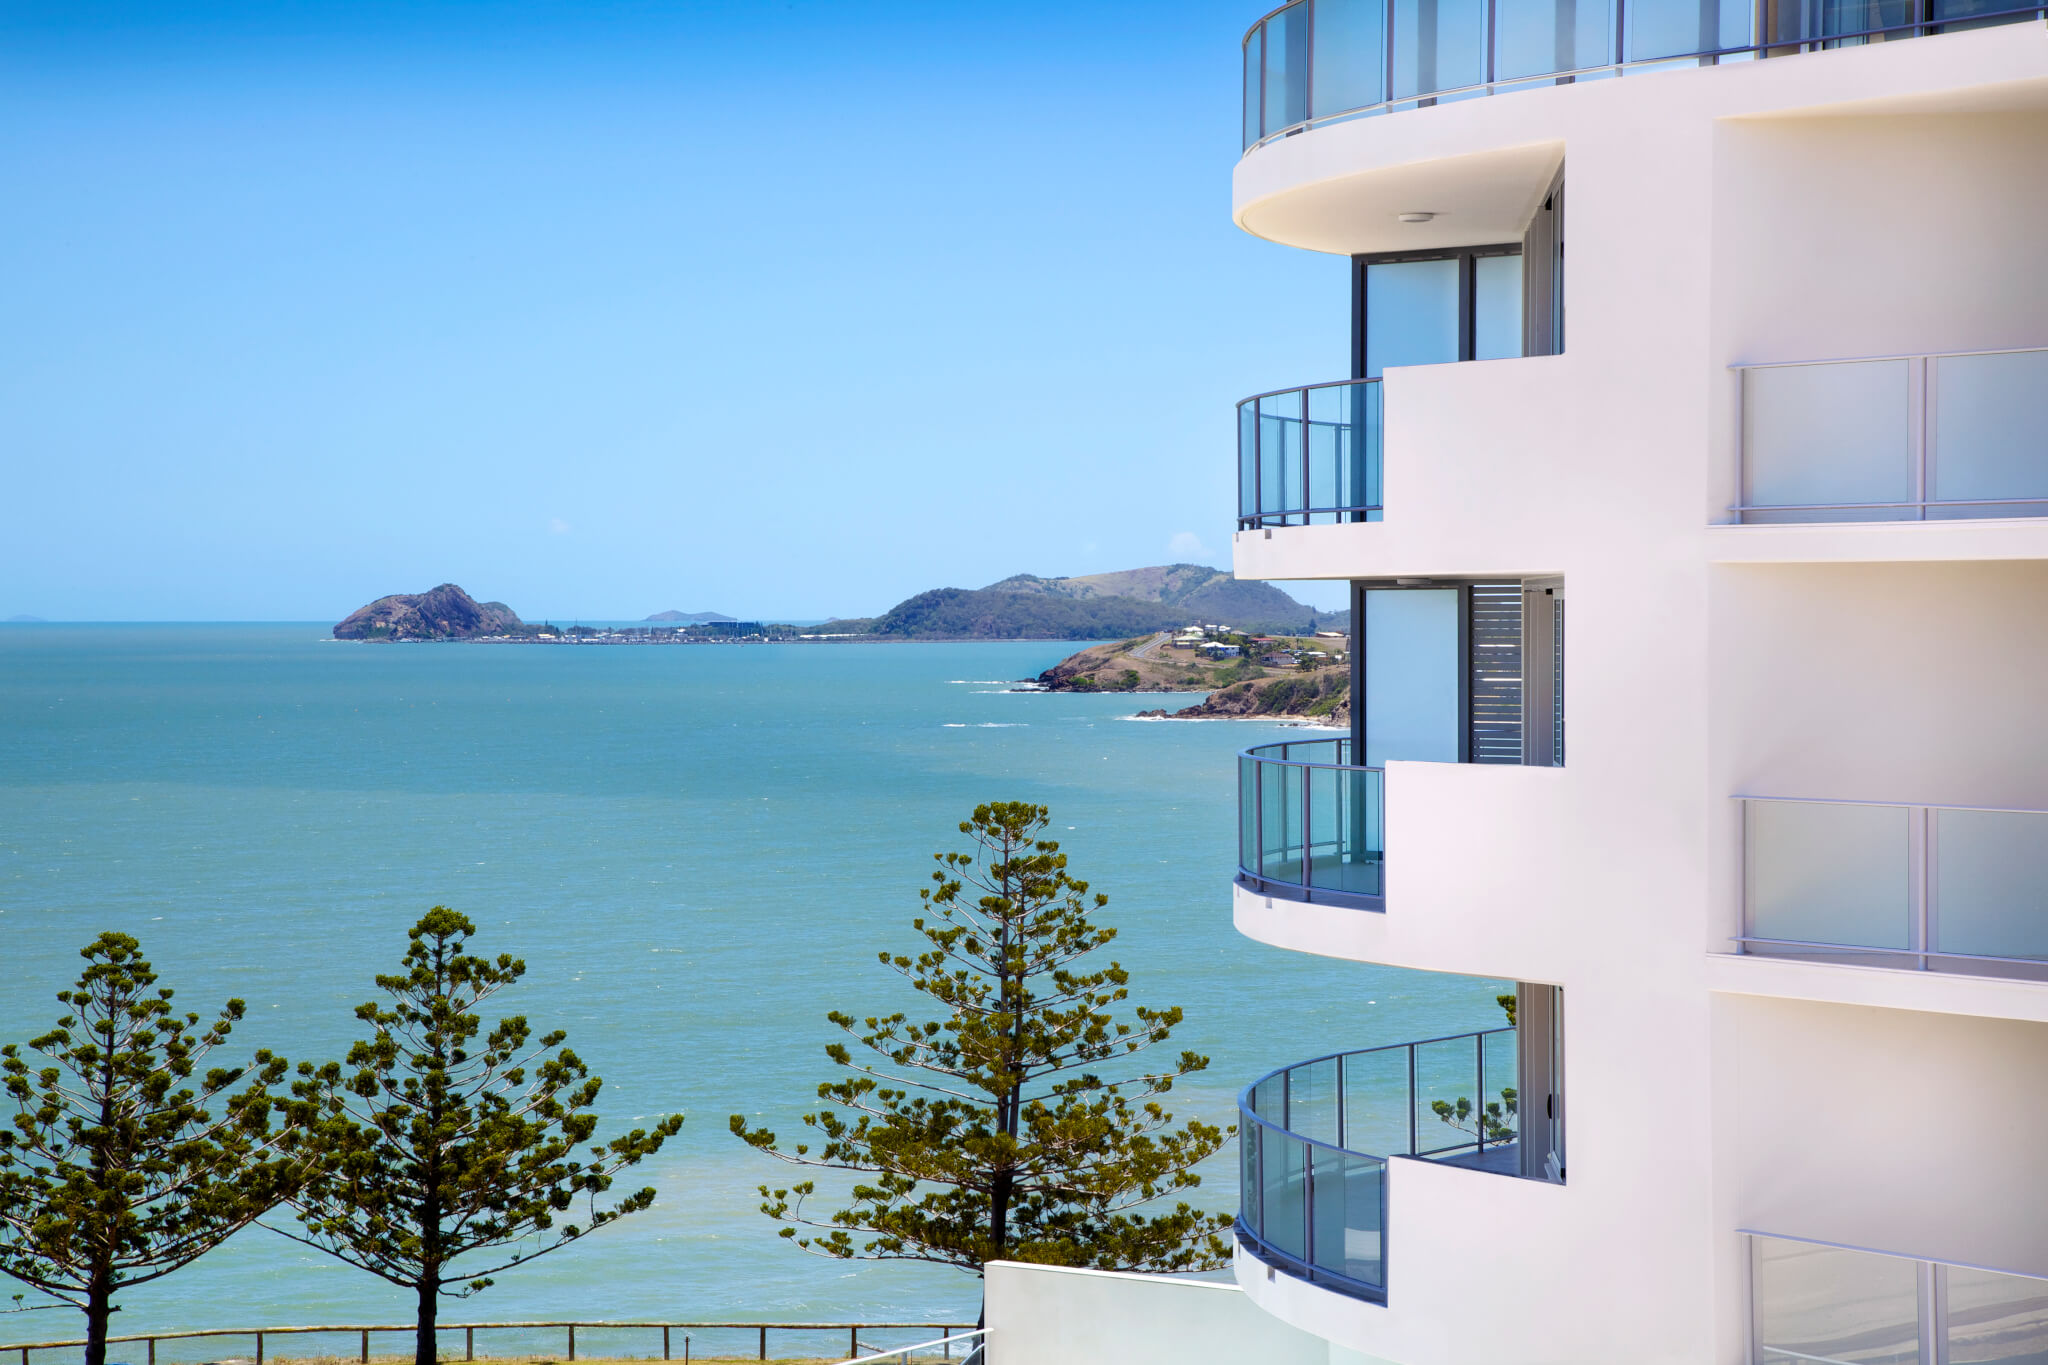 accommodation, places to stay in Yeppoon, views of Keppel Bay